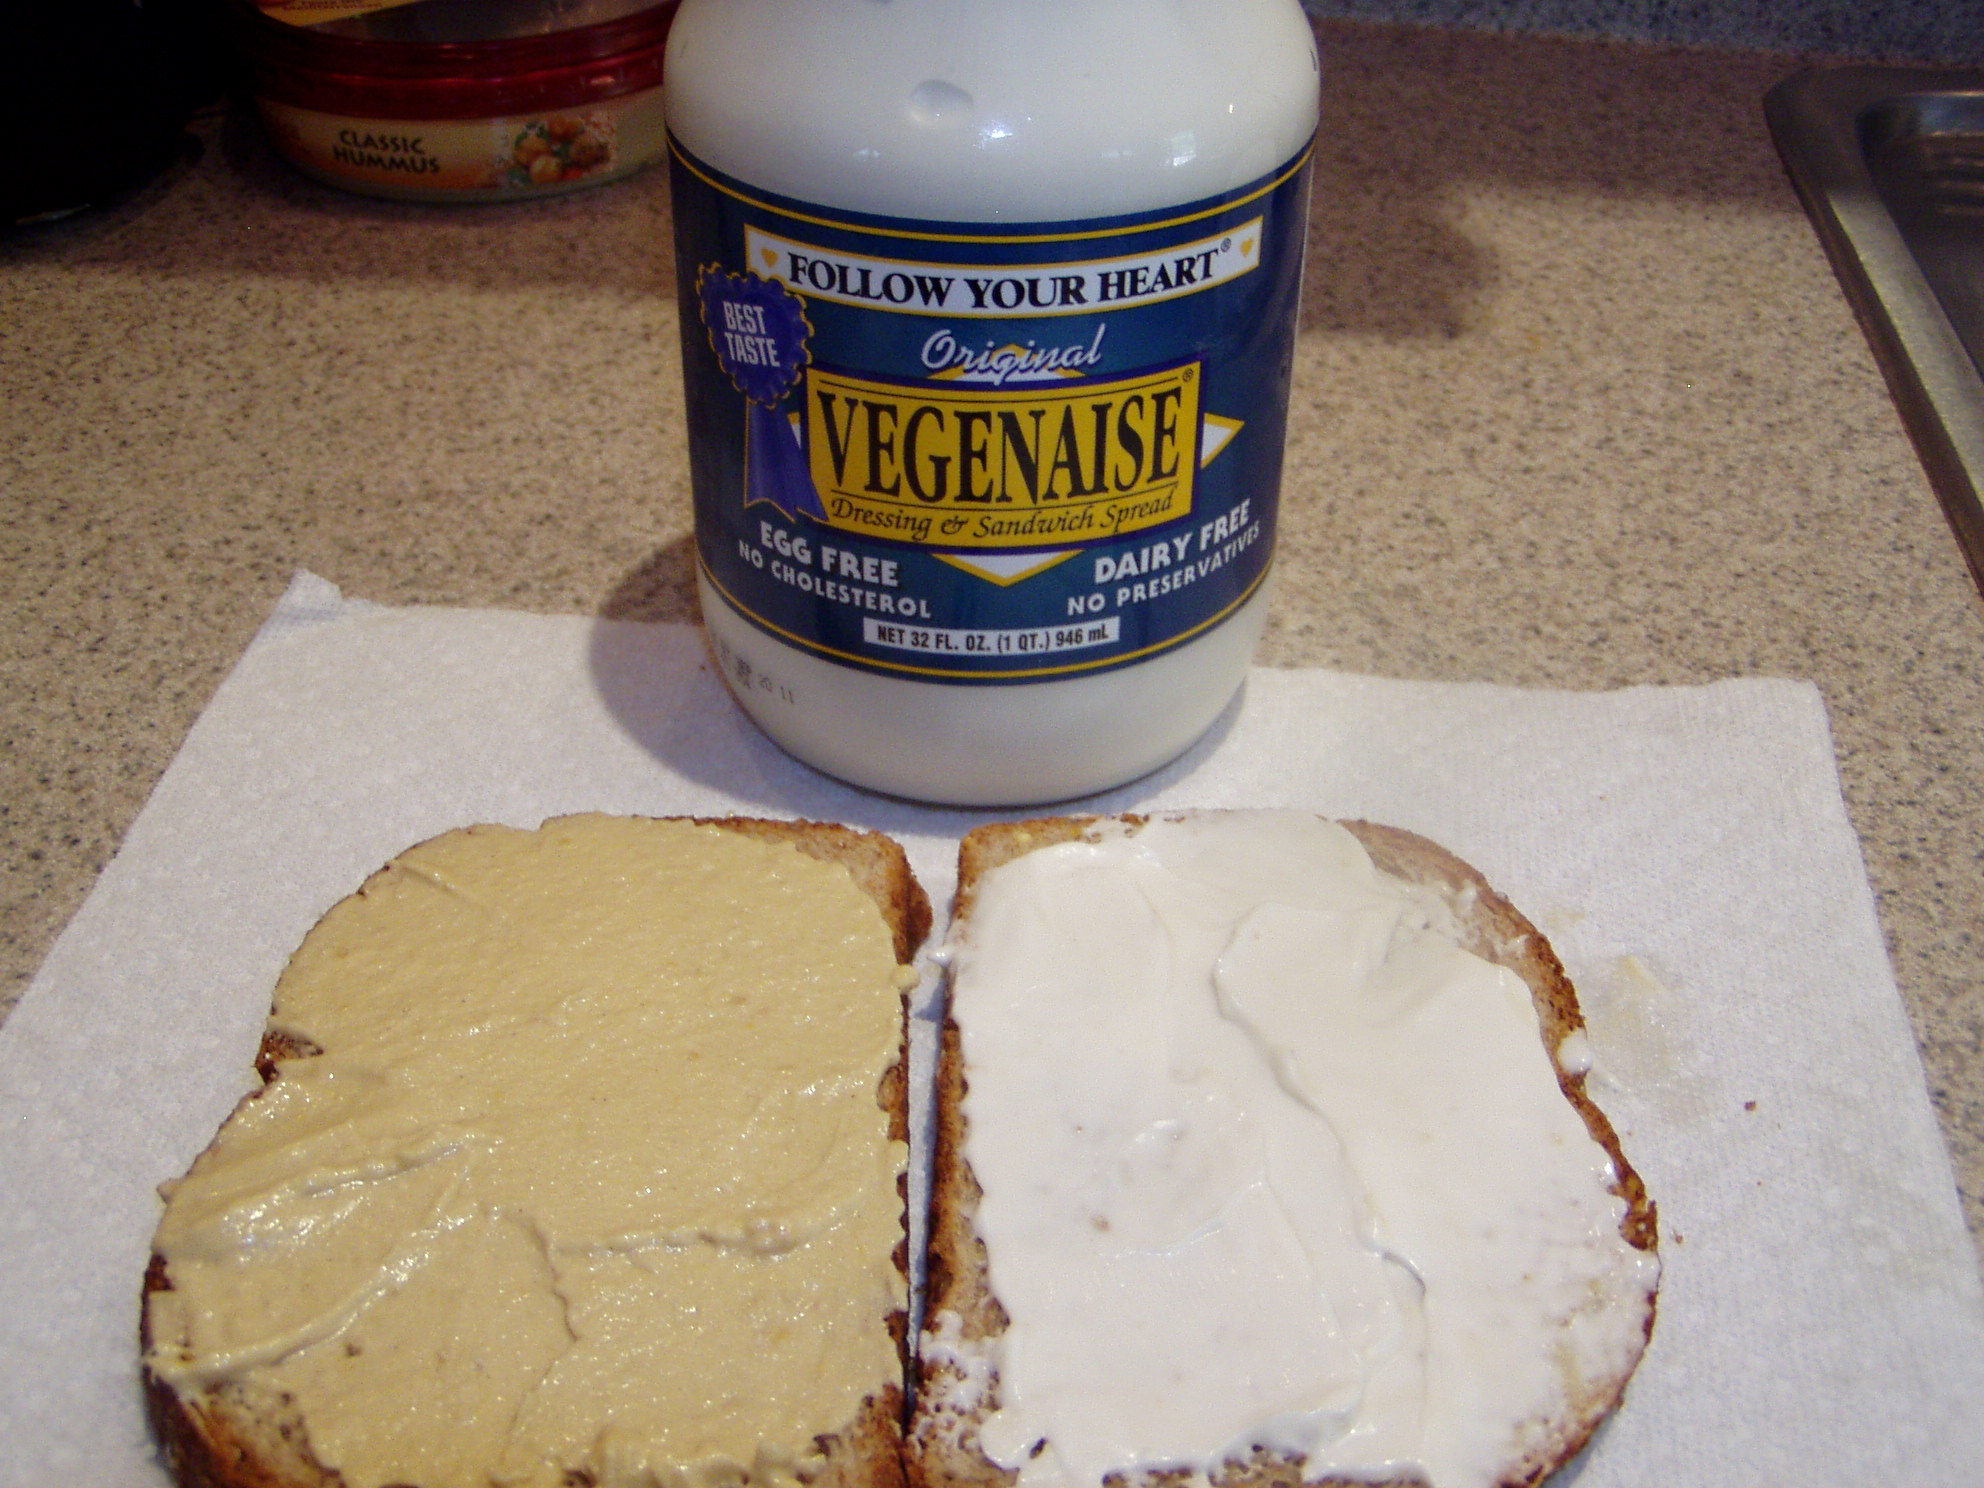 Spread vegan mayonnaise on other slice